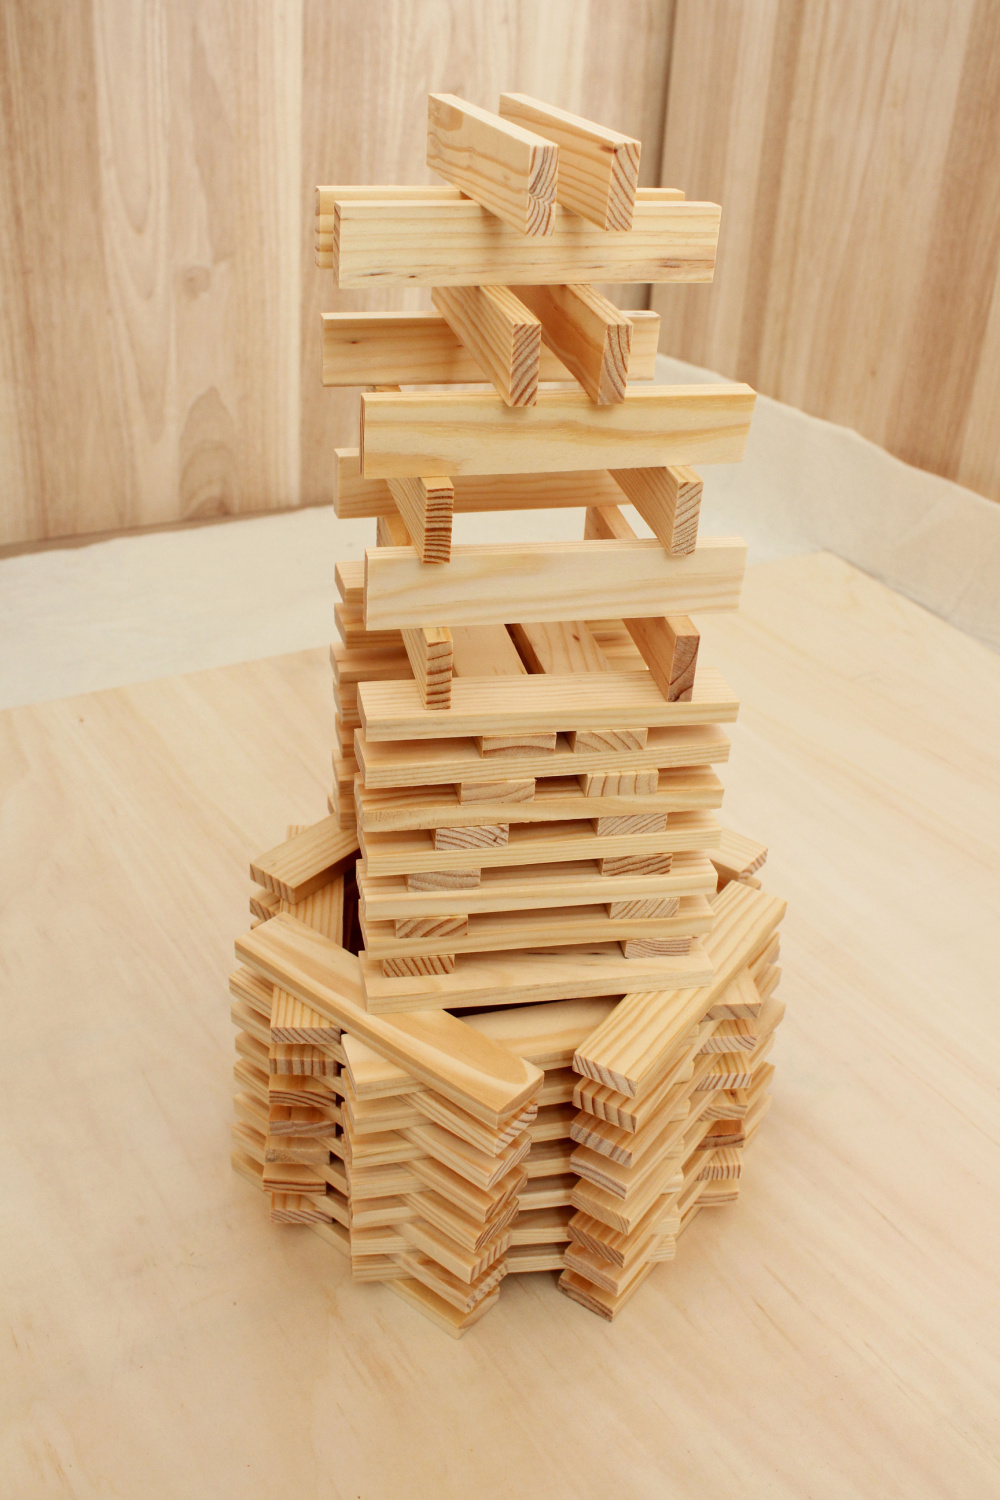 Wooden plank blocks wooden structure building blocks set for Plank blocks